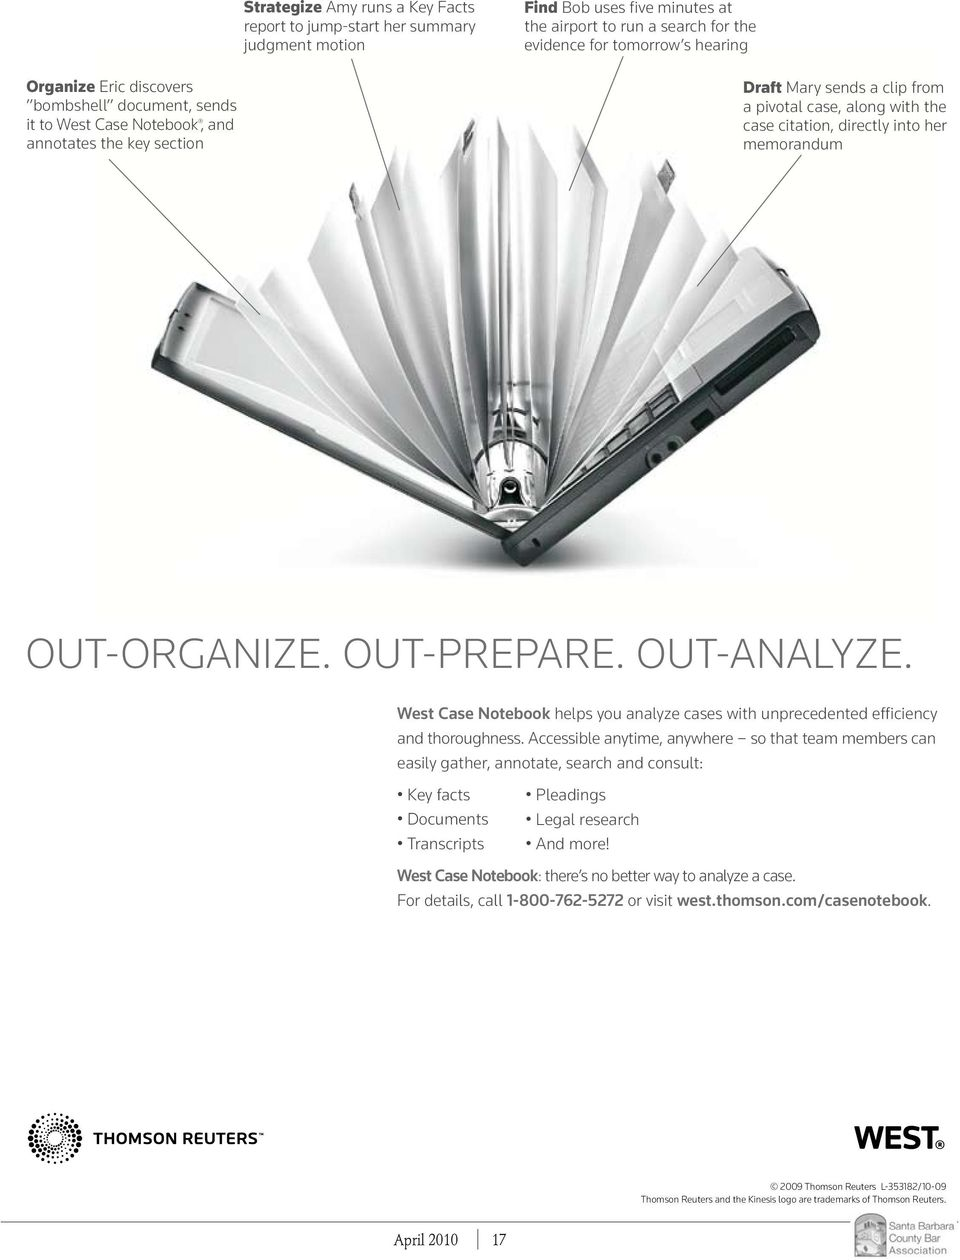 OUT-ORGANIZE. OUT-PREPARE. OUT-ANALYZE. West Case Notebook helps you analyze cases with unprecedented efficiency and thoroughness.